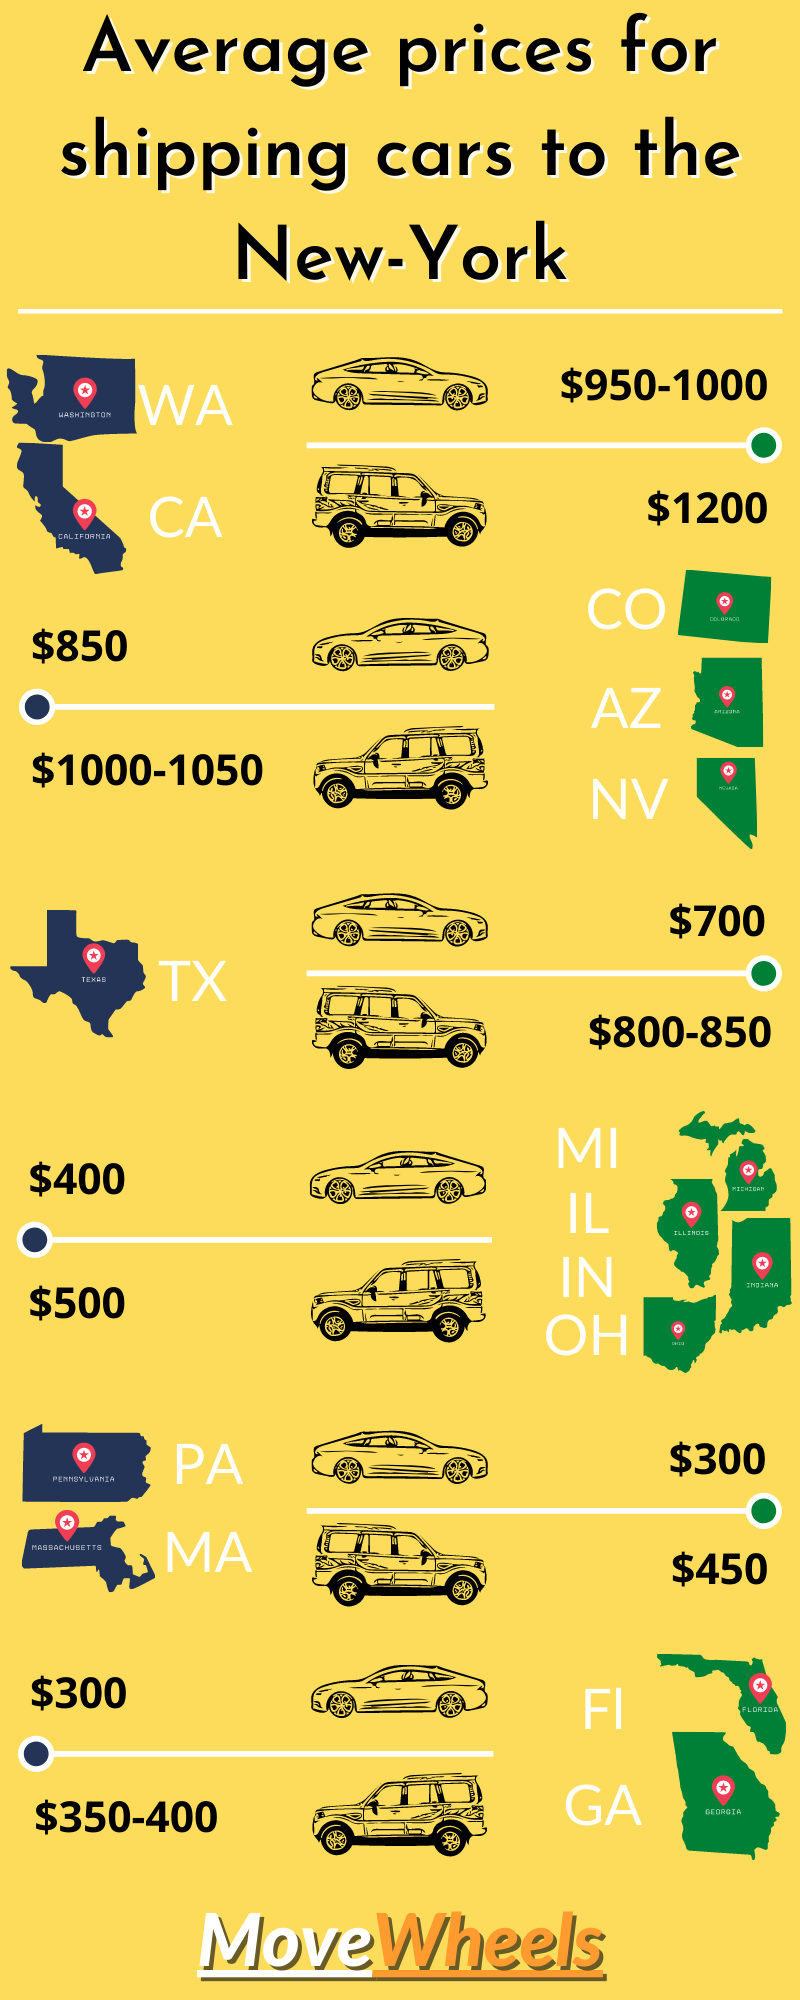 How much does it cost to ship a car to NY